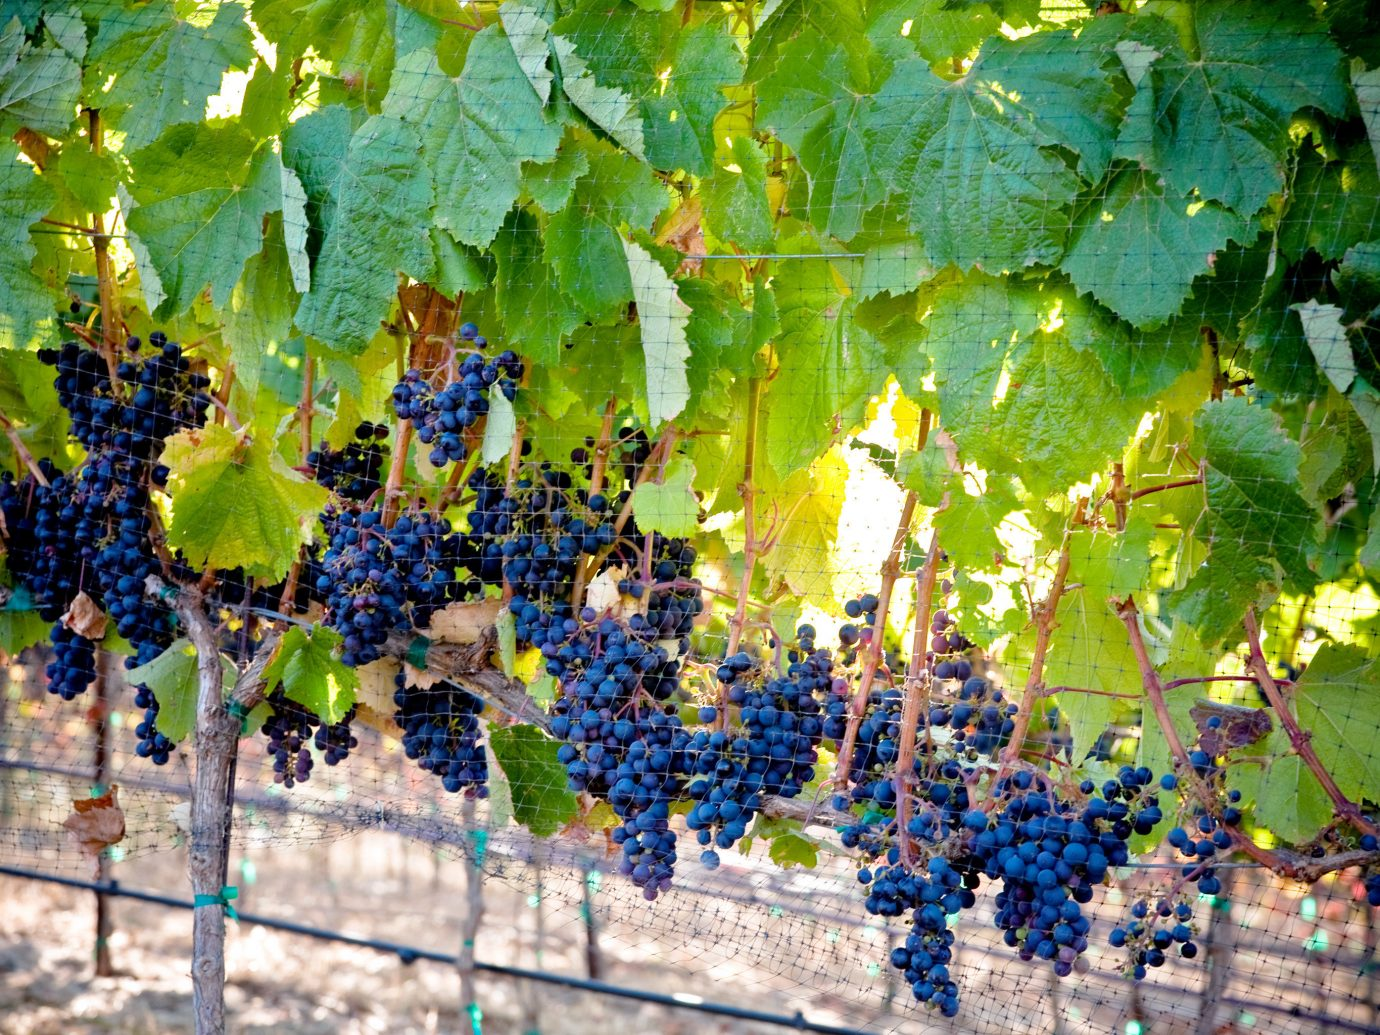 Nature Outdoor Activities Outdoors Travel Tips Wine-Tasting grape agriculture plant tree food produce vitis fruit Vineyard land plant grapevine family flowering plant leaf flower autumn Garden